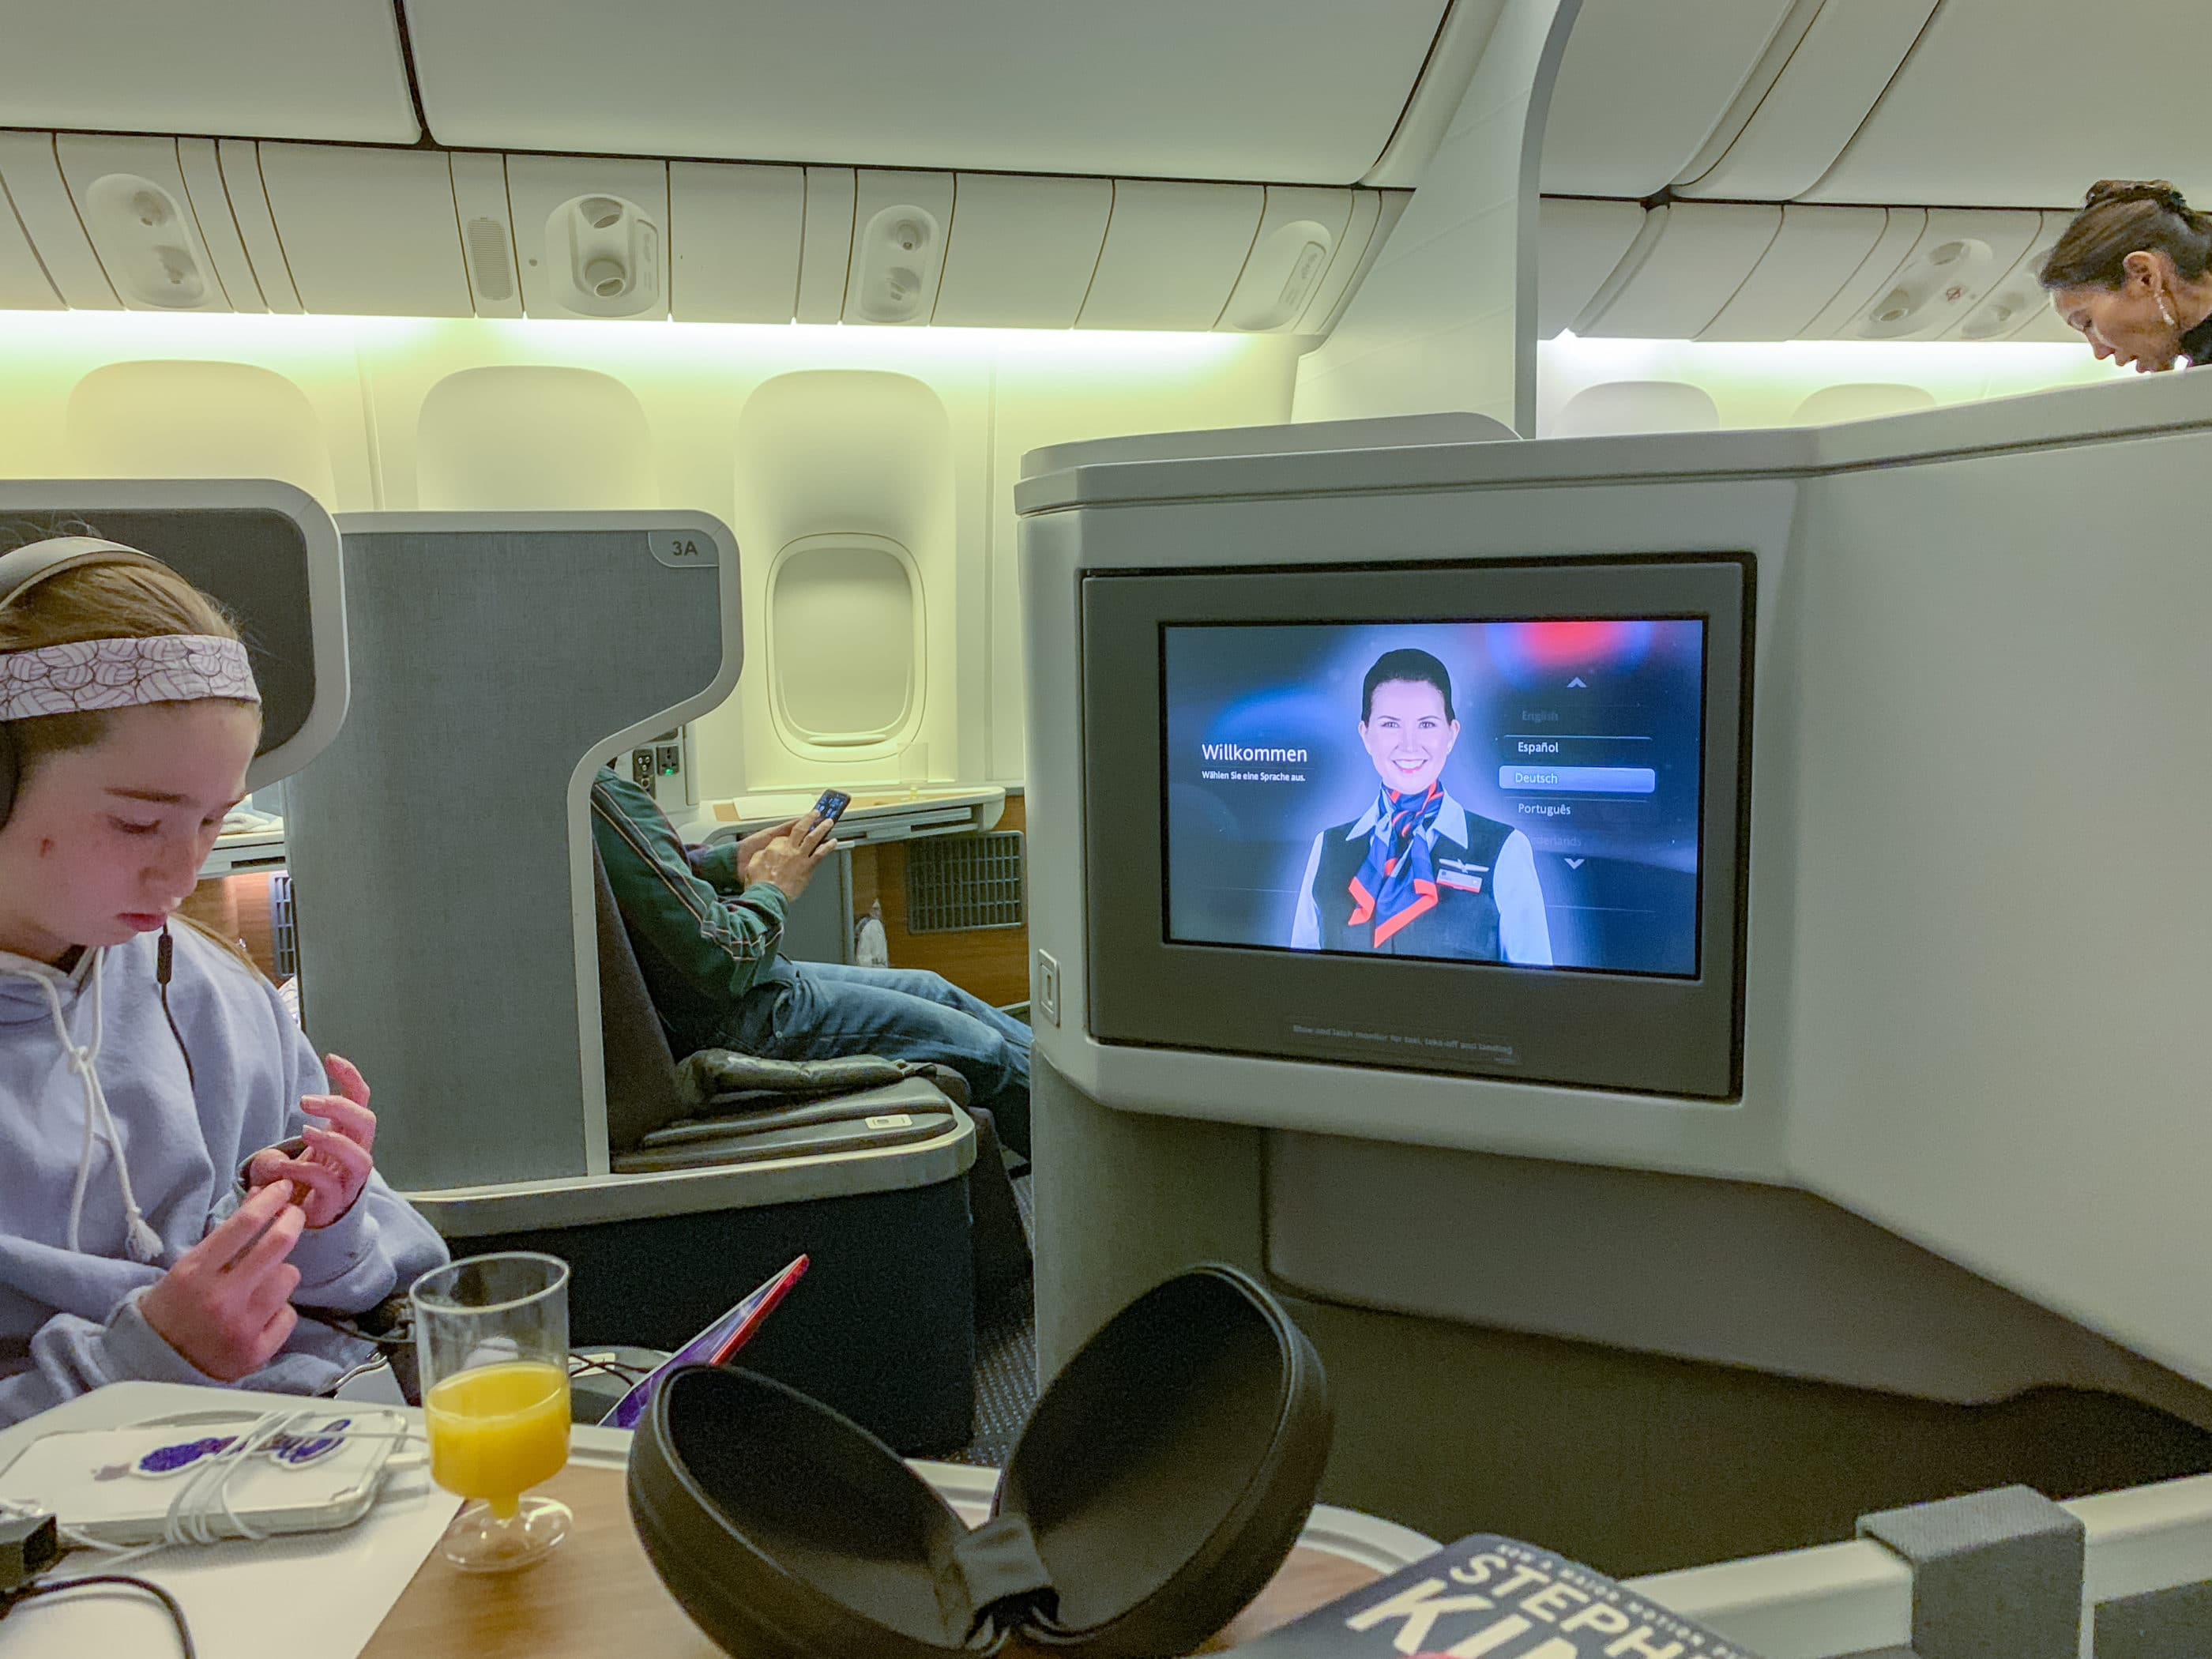 American Airlines business class from Los Angeles to Hong Kong on a 777-300ER